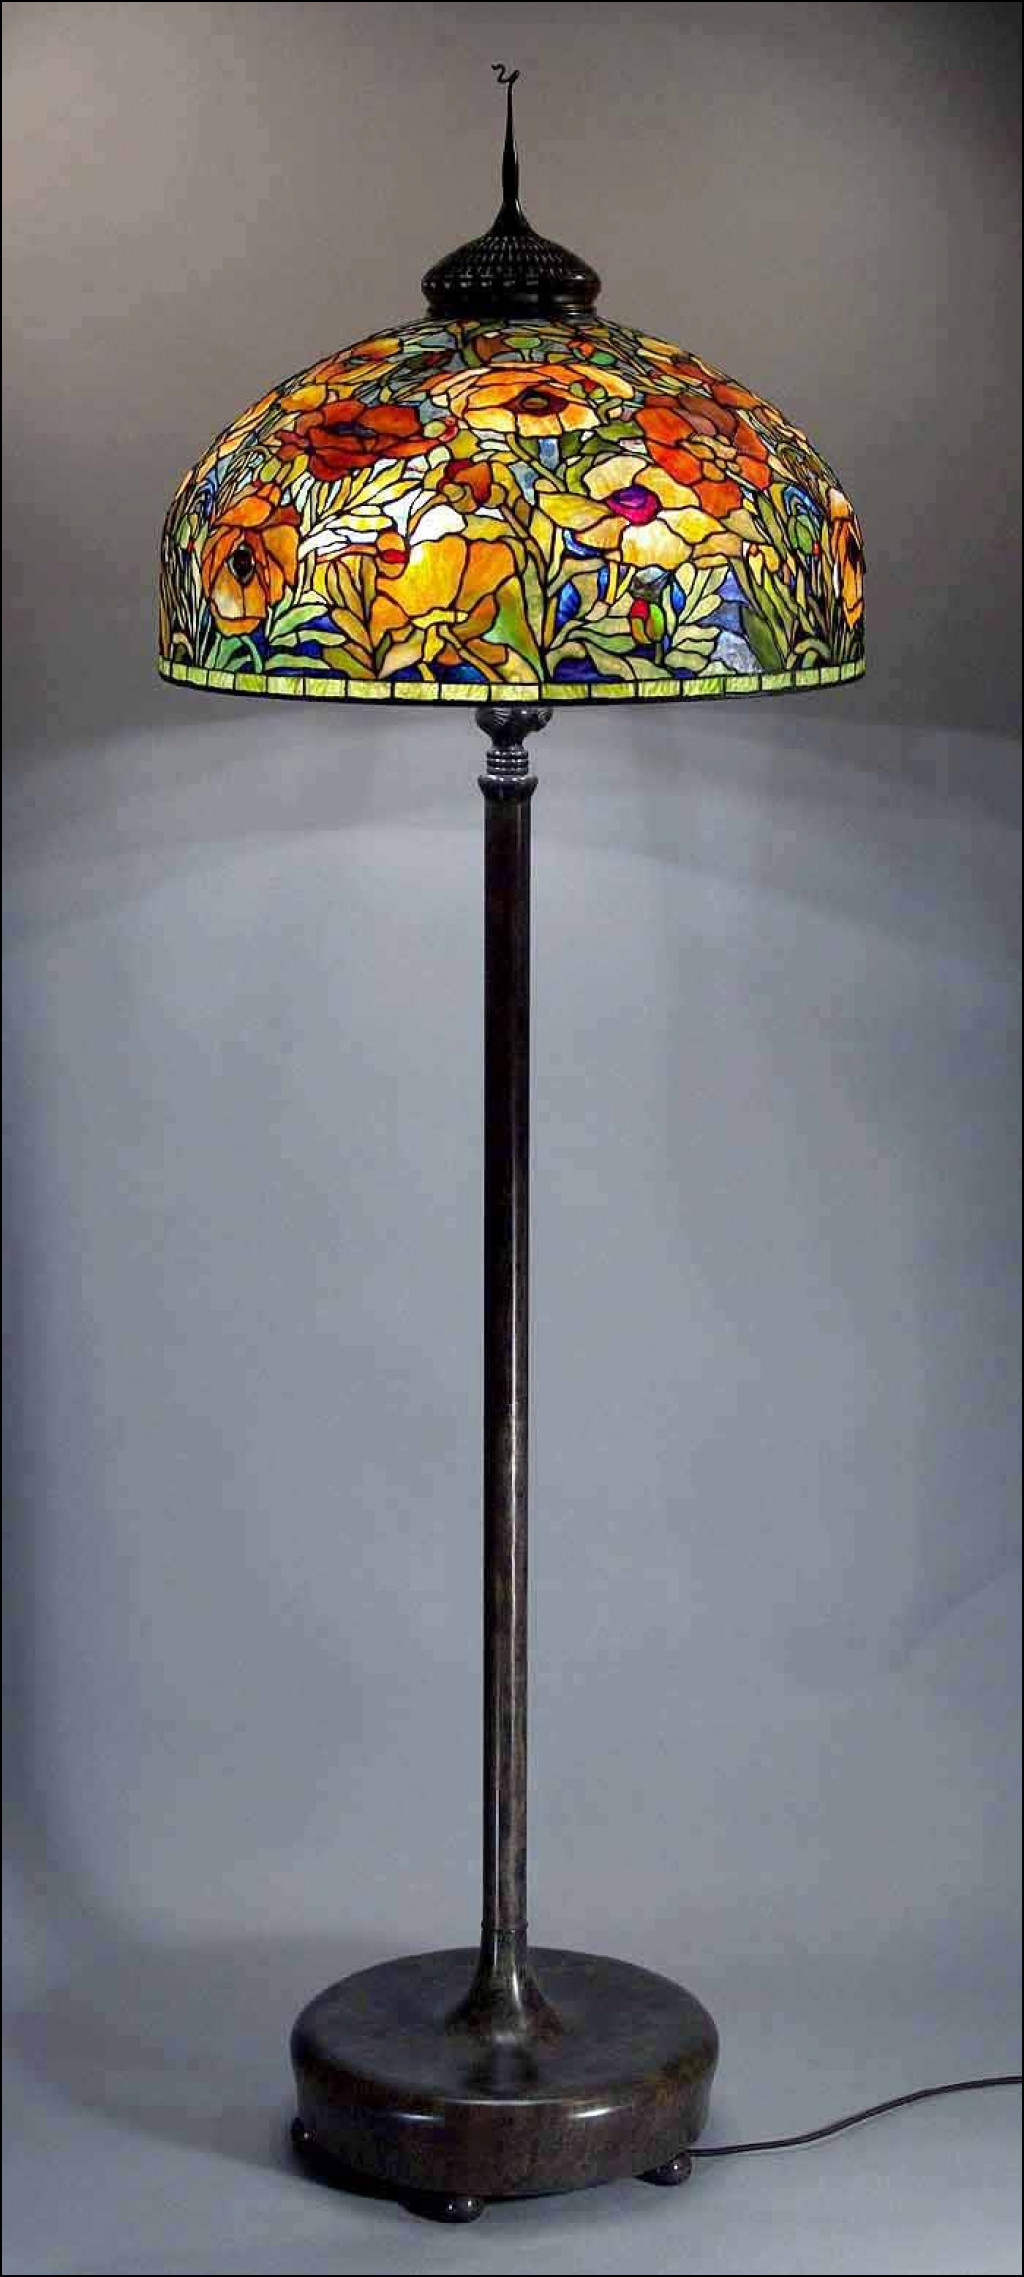 lamps dale tiffany table best lamp lowell beautiful stained mosaic accent gold home accessories round occasional tables with drawers decorative for dining room brown wicker patio